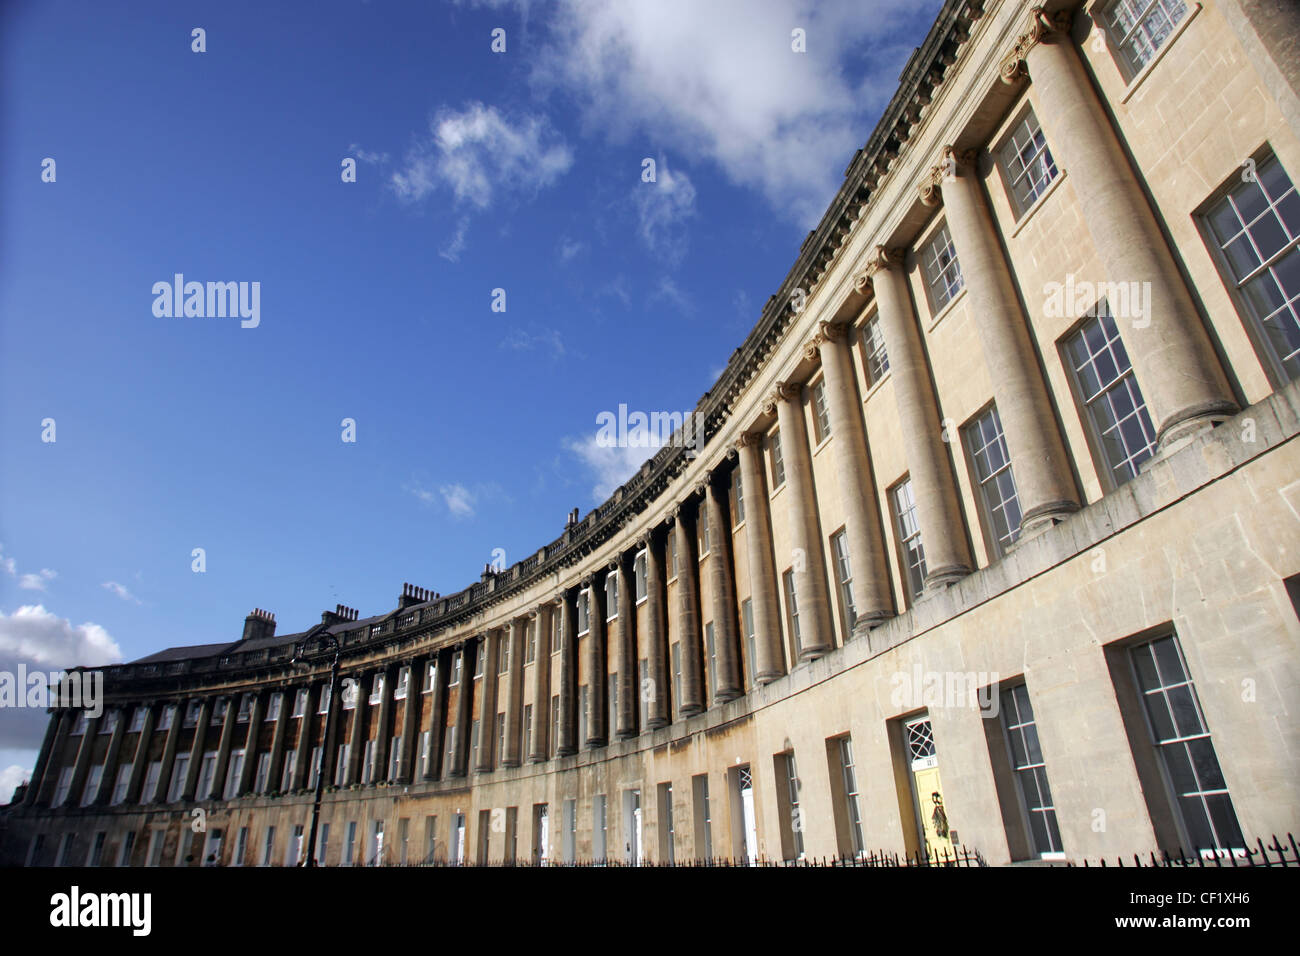 The Royal Crescent in Bath. - Stock Image